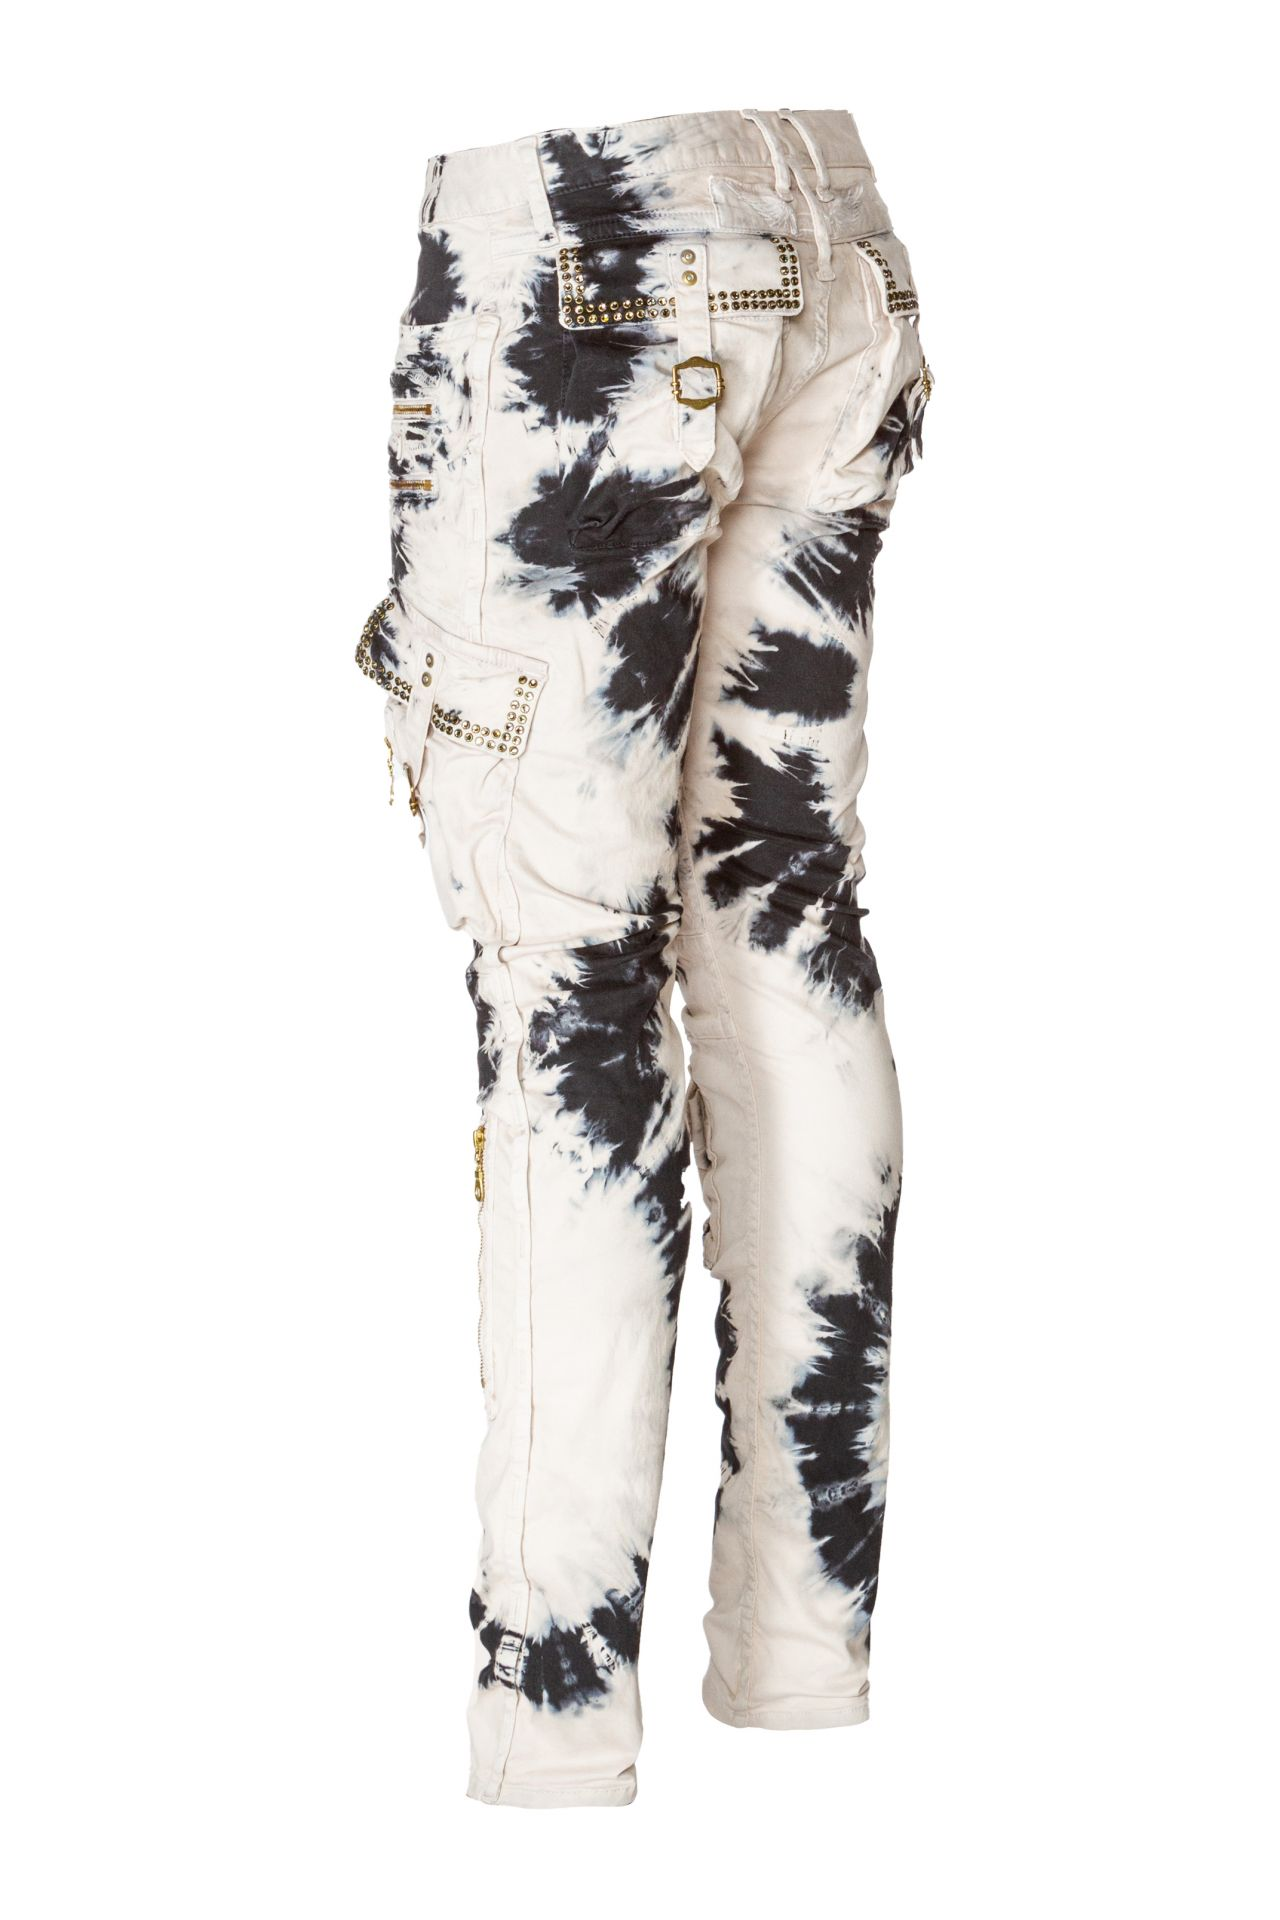 TIE DYE MILITARY CARGO WITH CRYSTALS